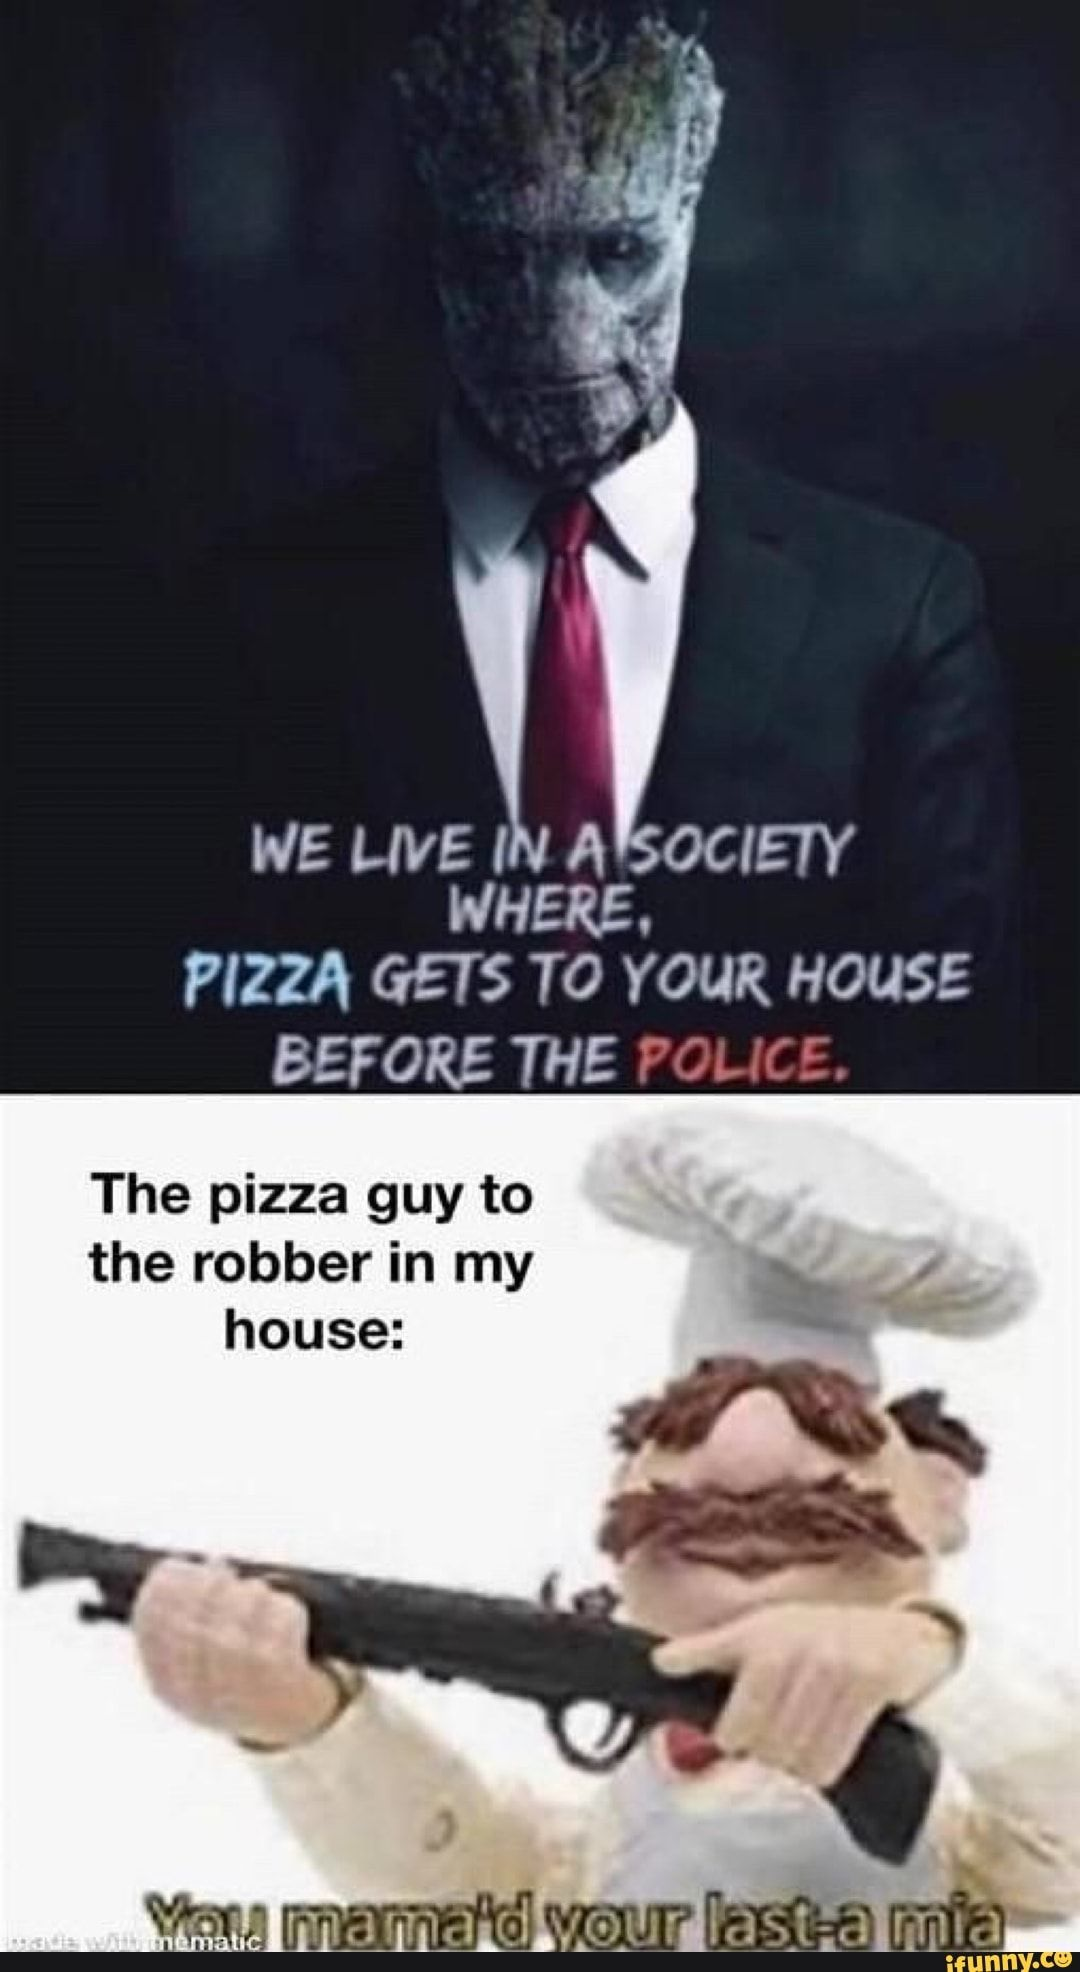 WE LIVE IN ATSOCIETY WHERE, PIZZA GETS TO YOUR HOUSE BEFORE THE POLICE. The pizza guy to the robber in my - )